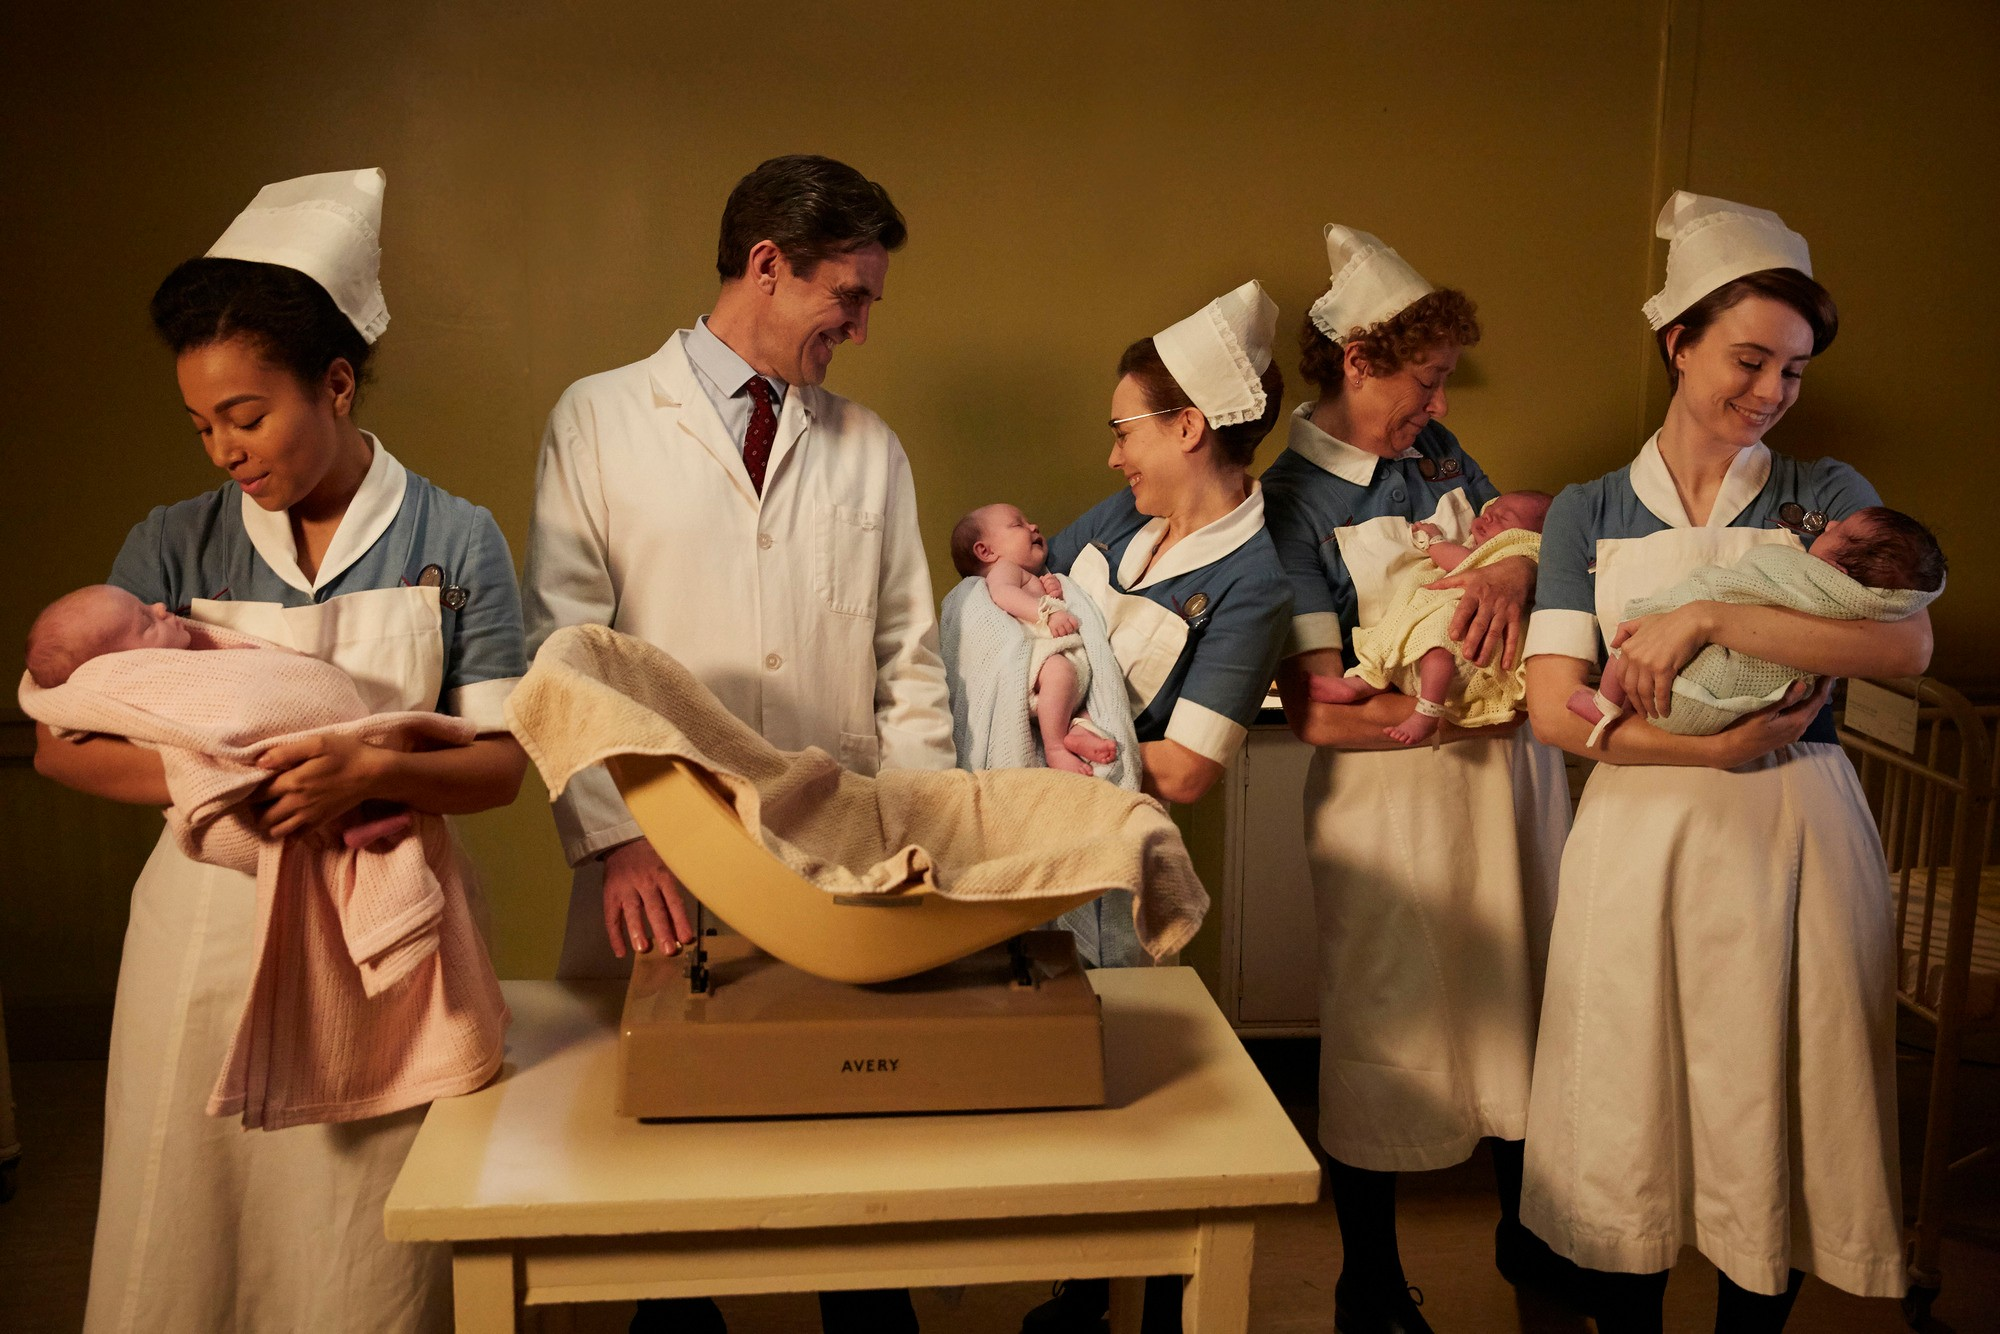 What will happen in Call The Midwife series 8?